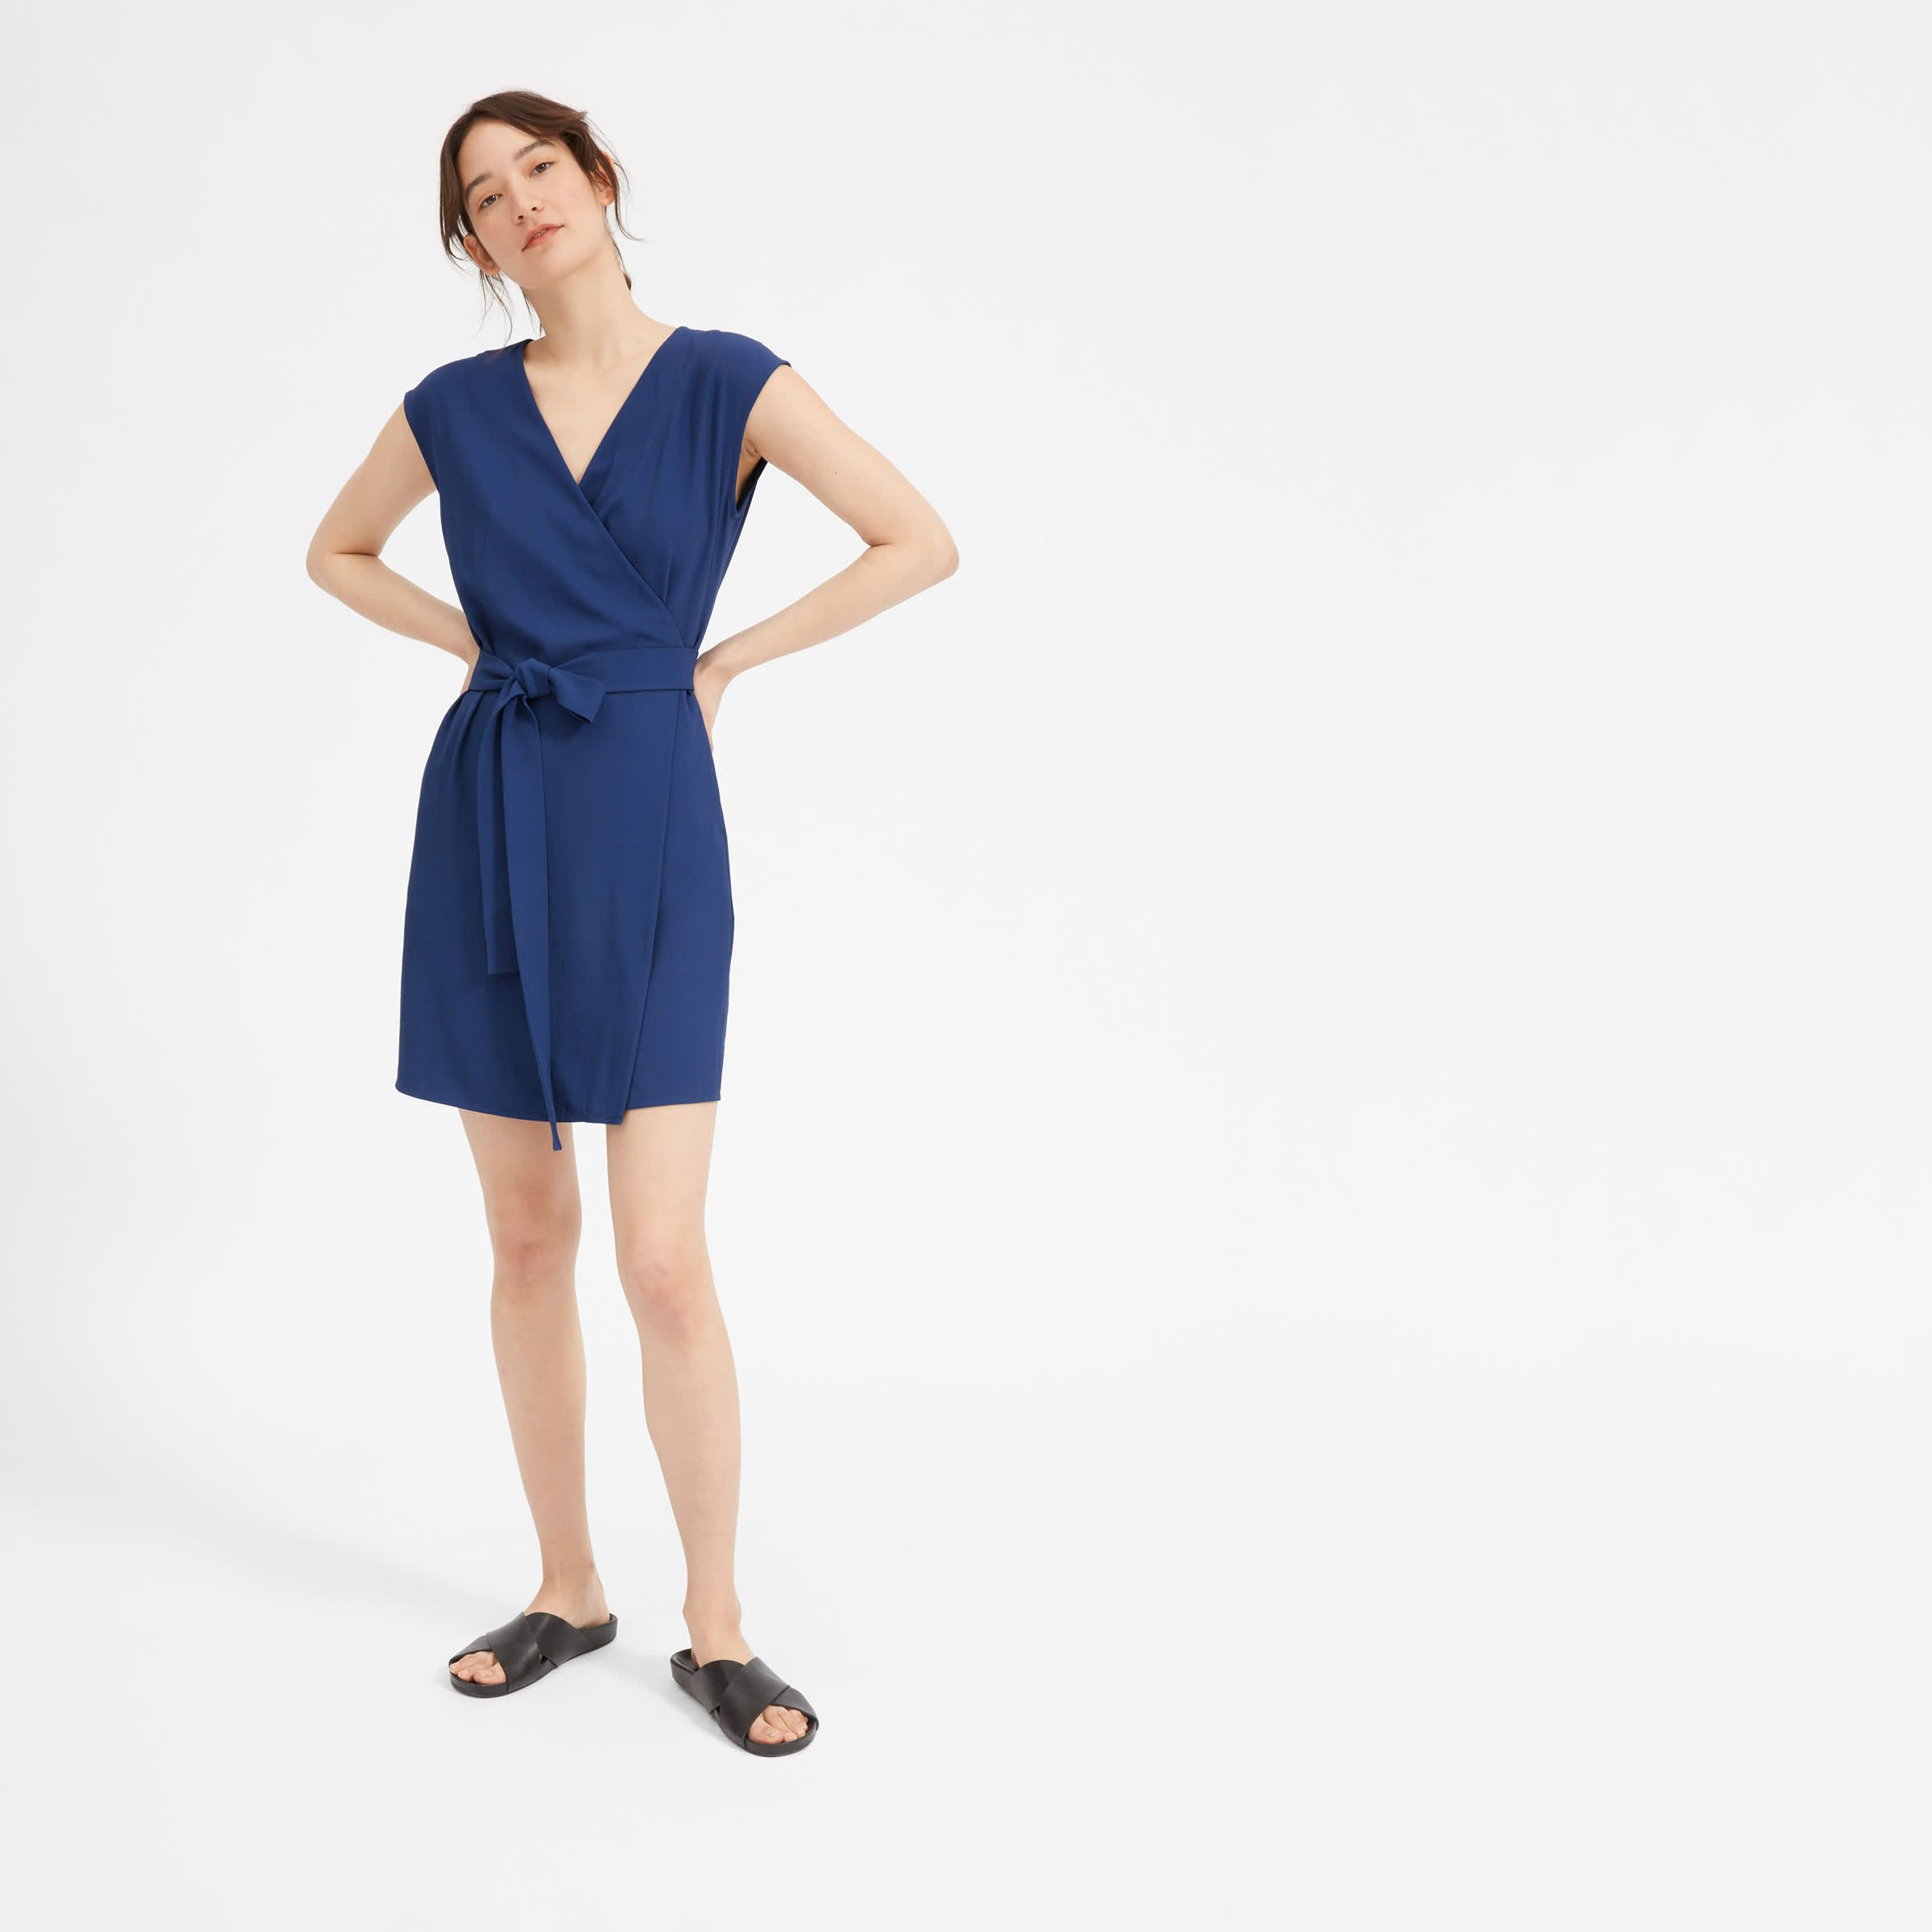 All Wrapped Up A Flattering V Neckline Tie Waist And Versatile Above The Knee Length Make This A Clas Mini Wrap Dress Wrap Dress Outfit Casual Dress Outfits [ 2400 x 2400 Pixel ]